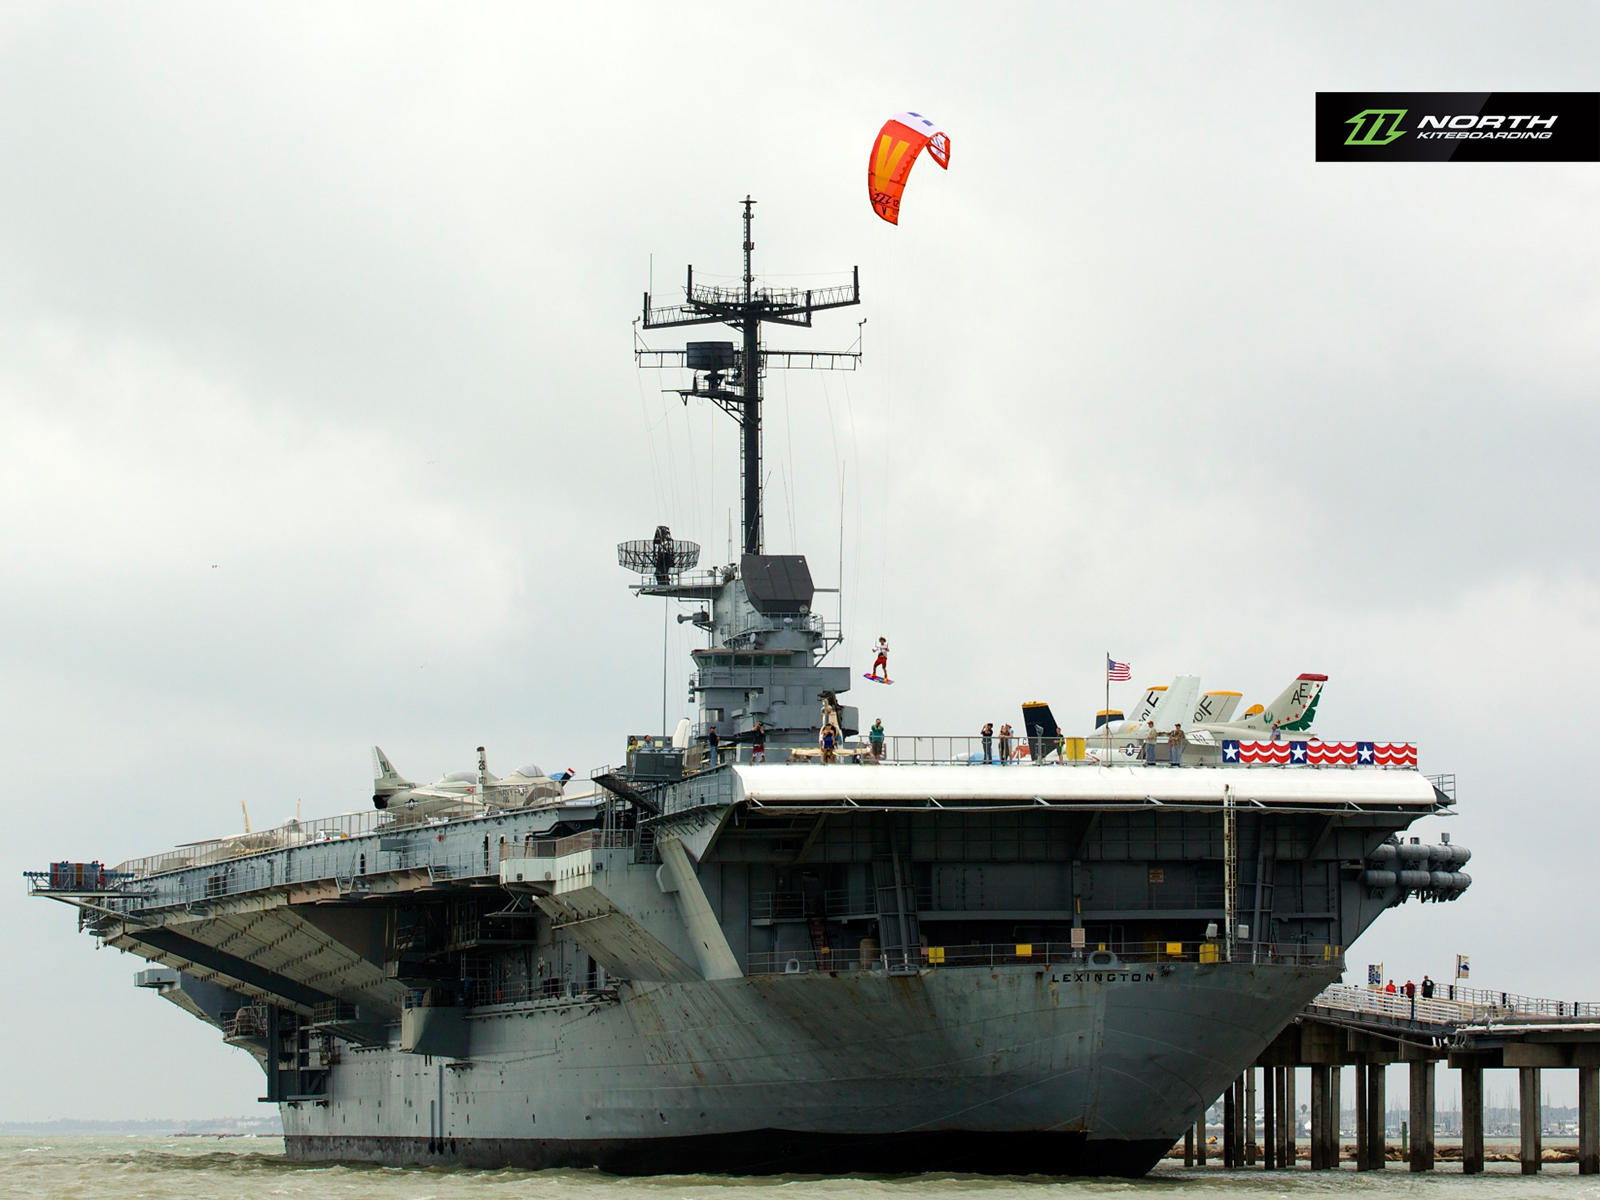 kitesurf wallpaper image - Jumping off an aircraft carrier with a North Vegas kite - in resolution: Standard 4:3 1600 X 1200